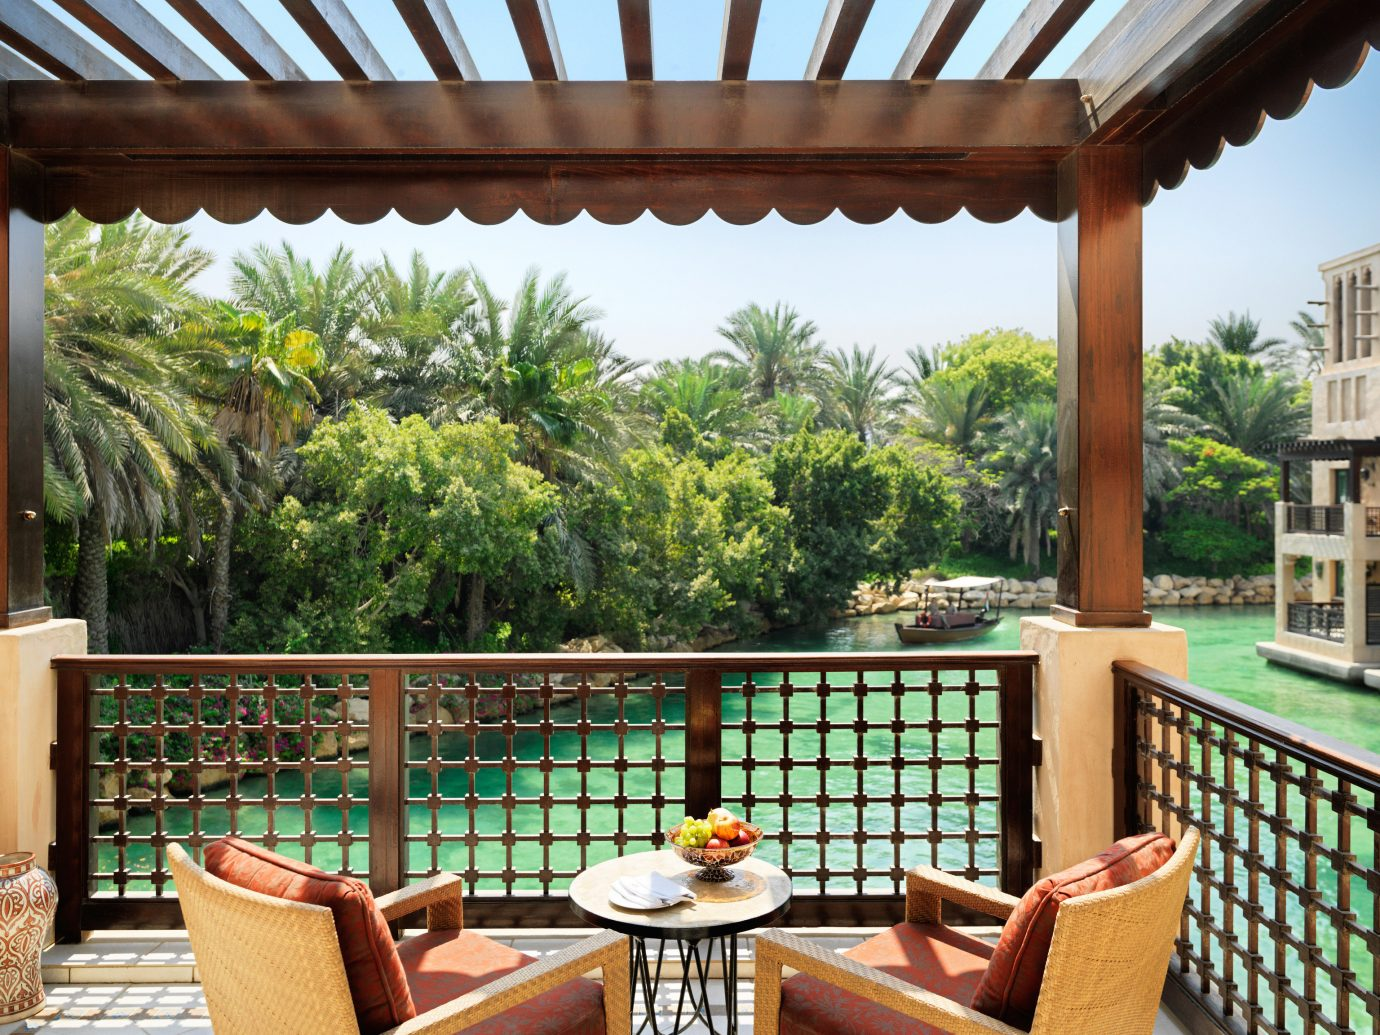 Dubai Hotels Luxury Travel Middle East property real estate outdoor structure estate Patio Balcony backyard Resort home roof window pergola apartment hacienda shade house